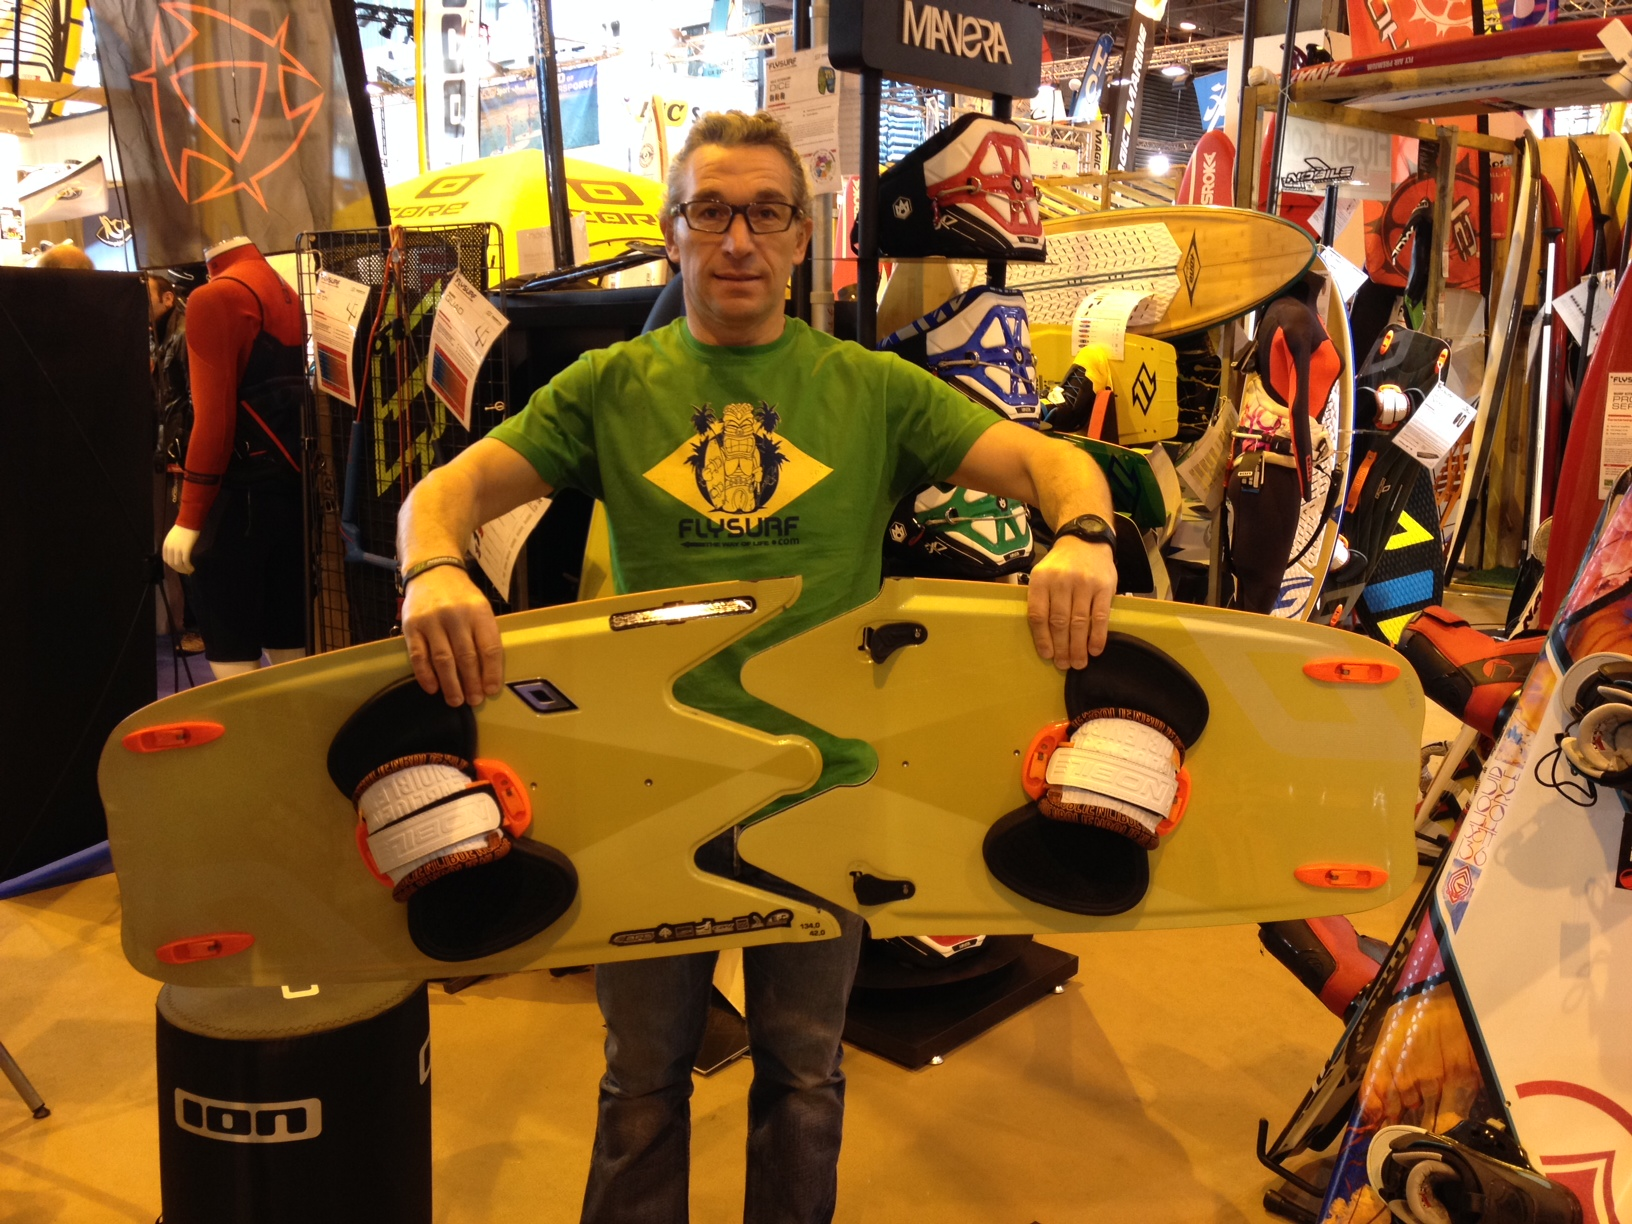 Flysurf au nautic : Nobile Split board